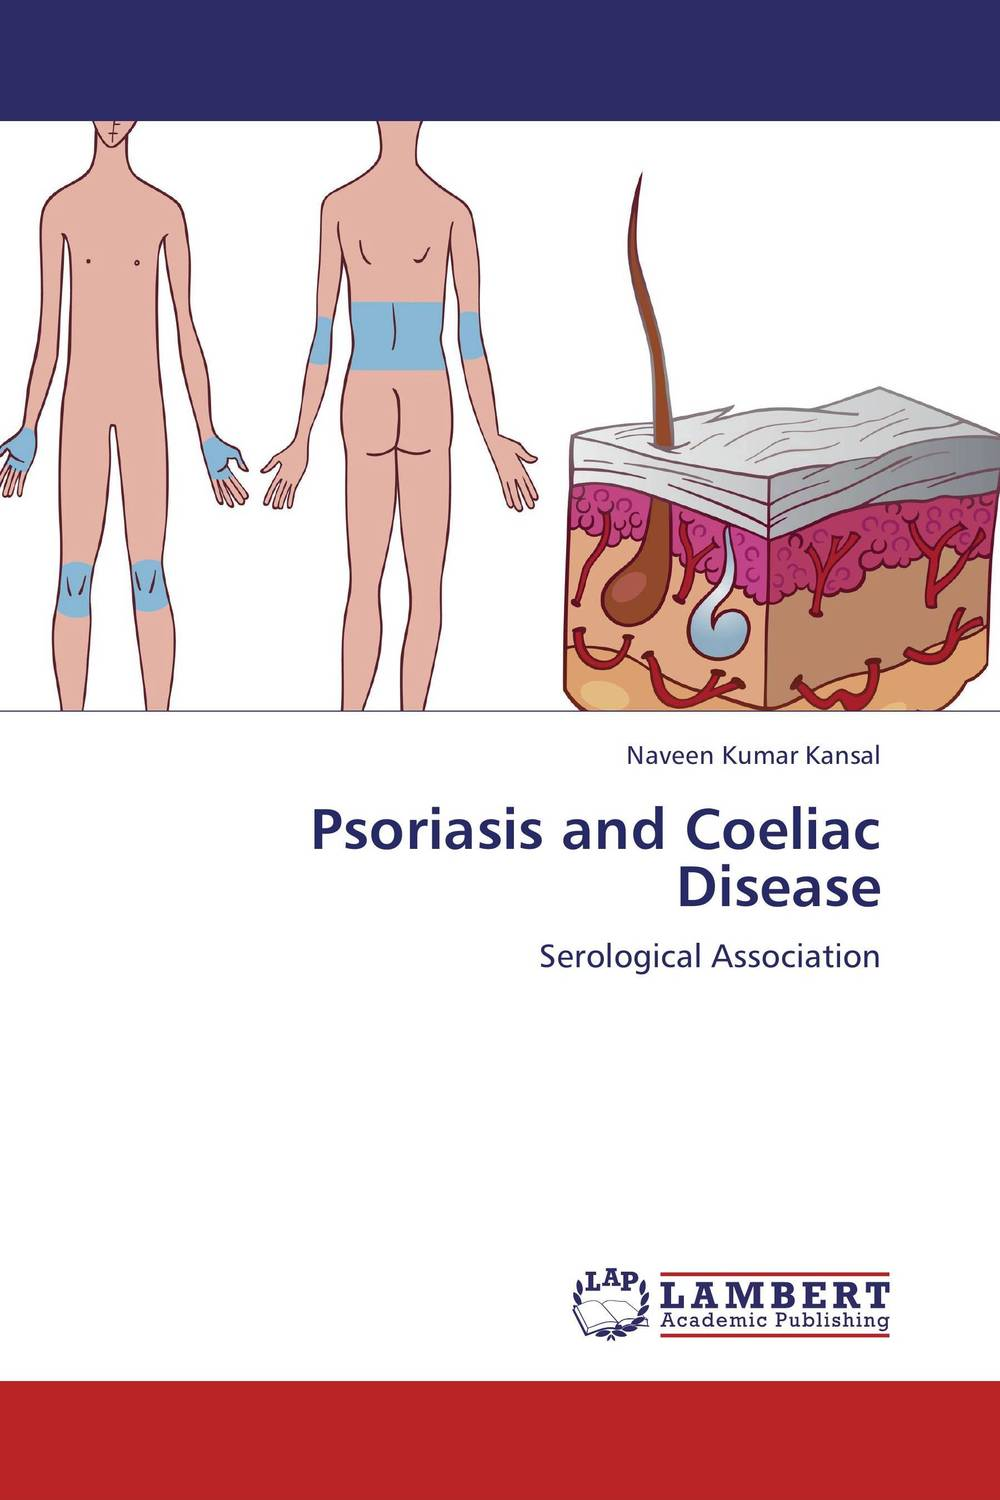 Psoriasis and Coeliac Disease